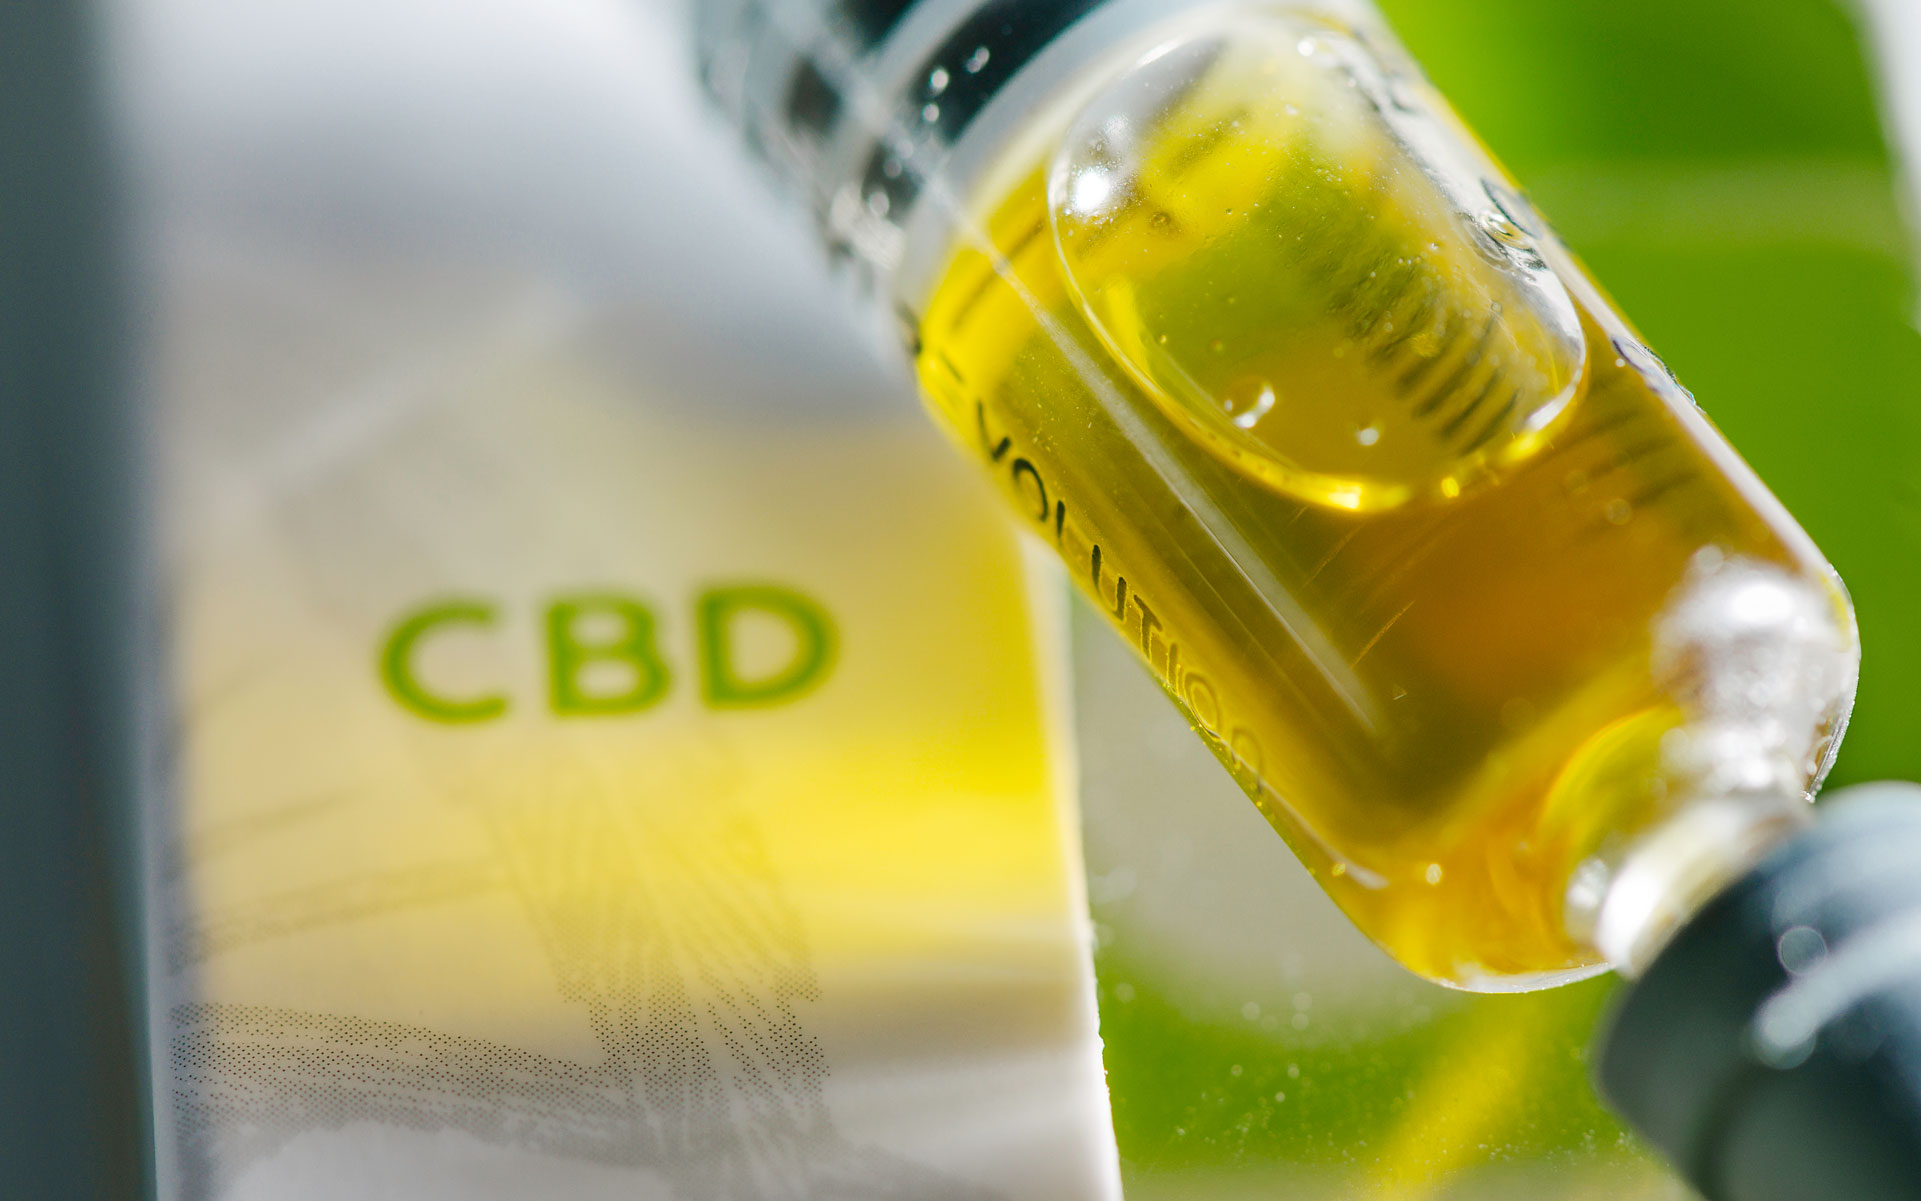 Serum CBD RSO in packaging with 'CBD' label visible